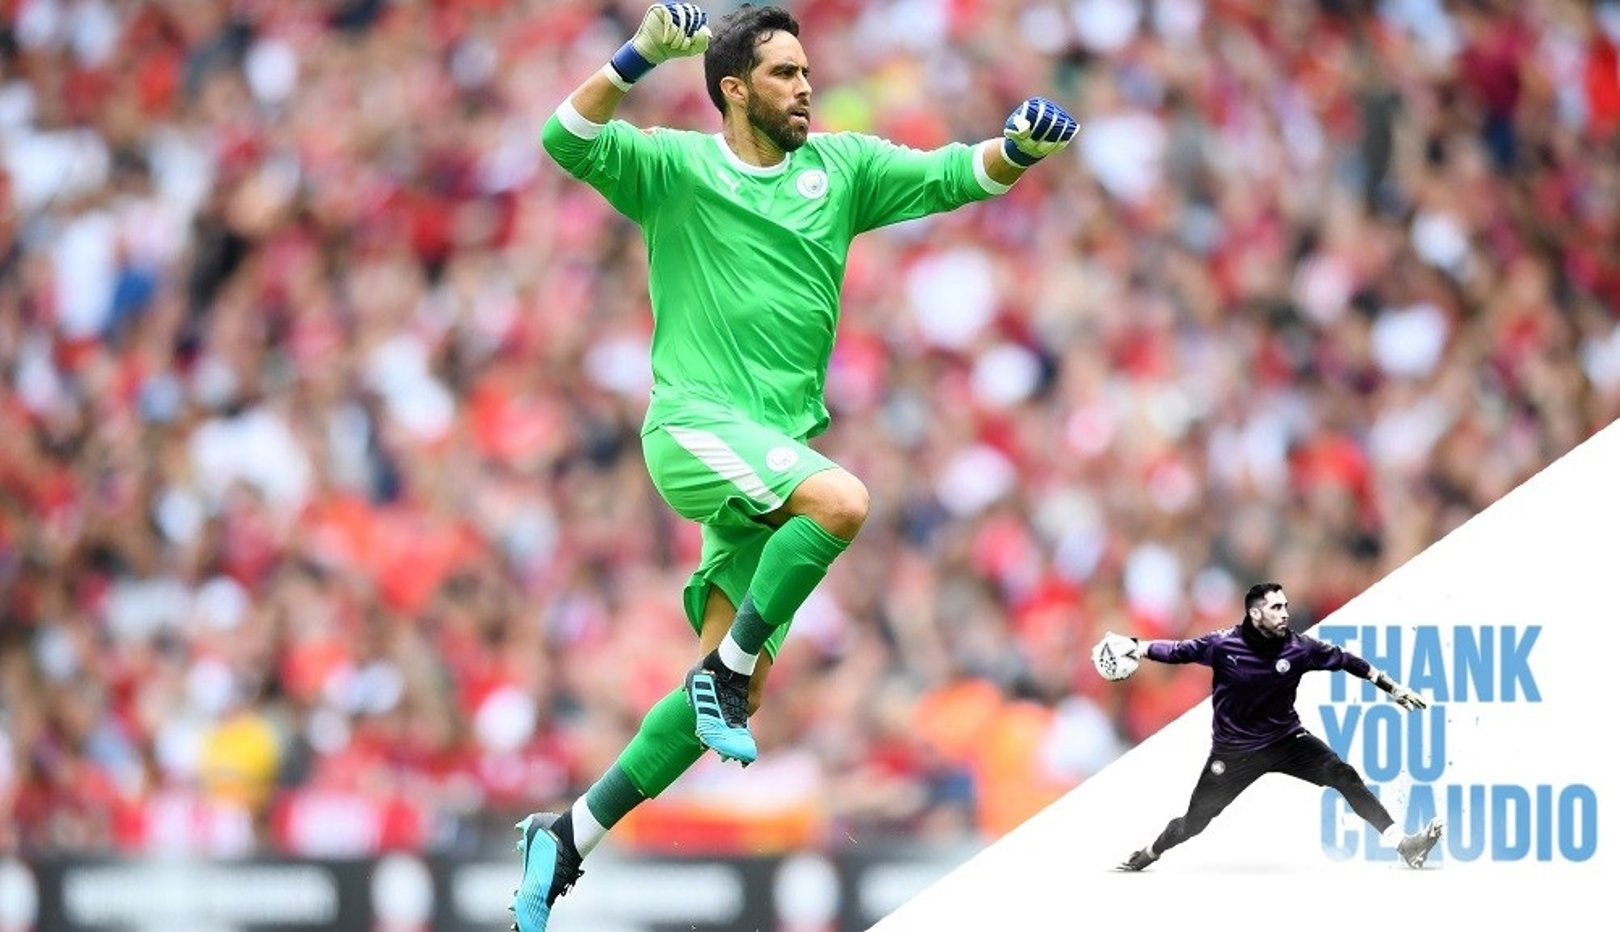 Claudio Bravo leaves Manchester City